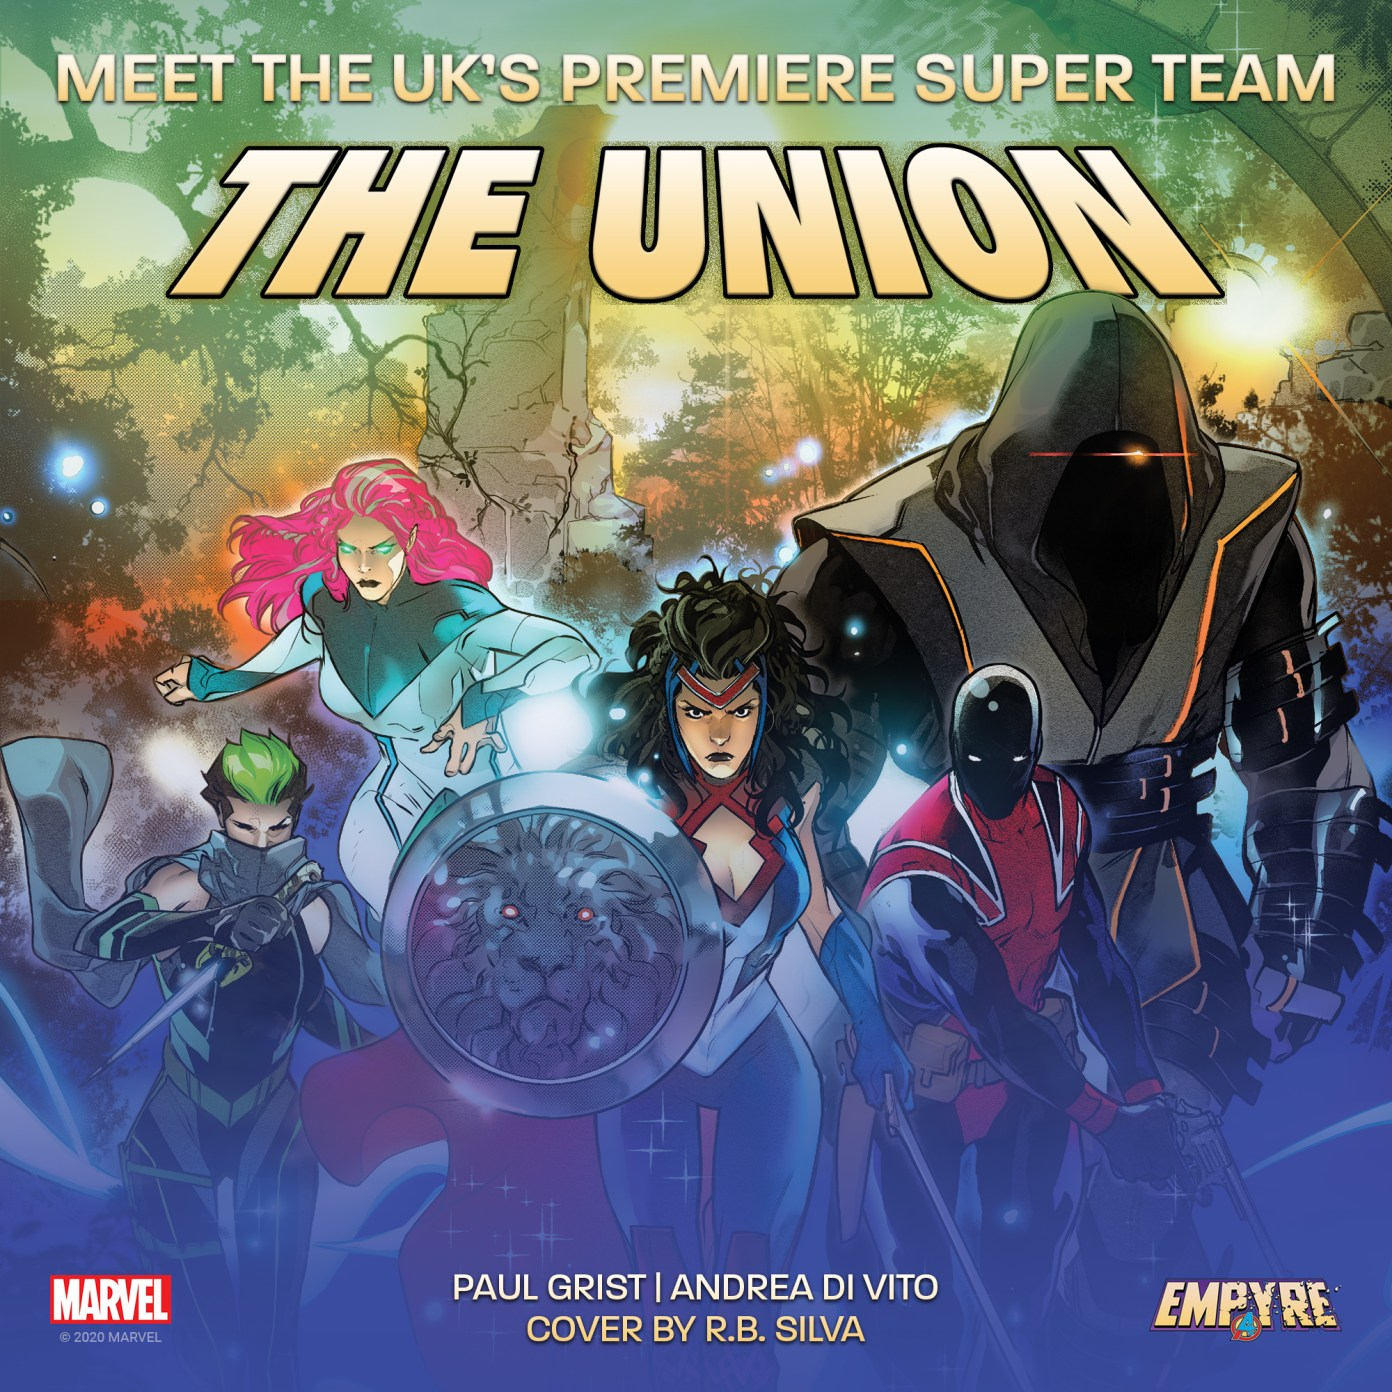 Marvel sets out to change the MCU landscape with the new British Super Team, The Union